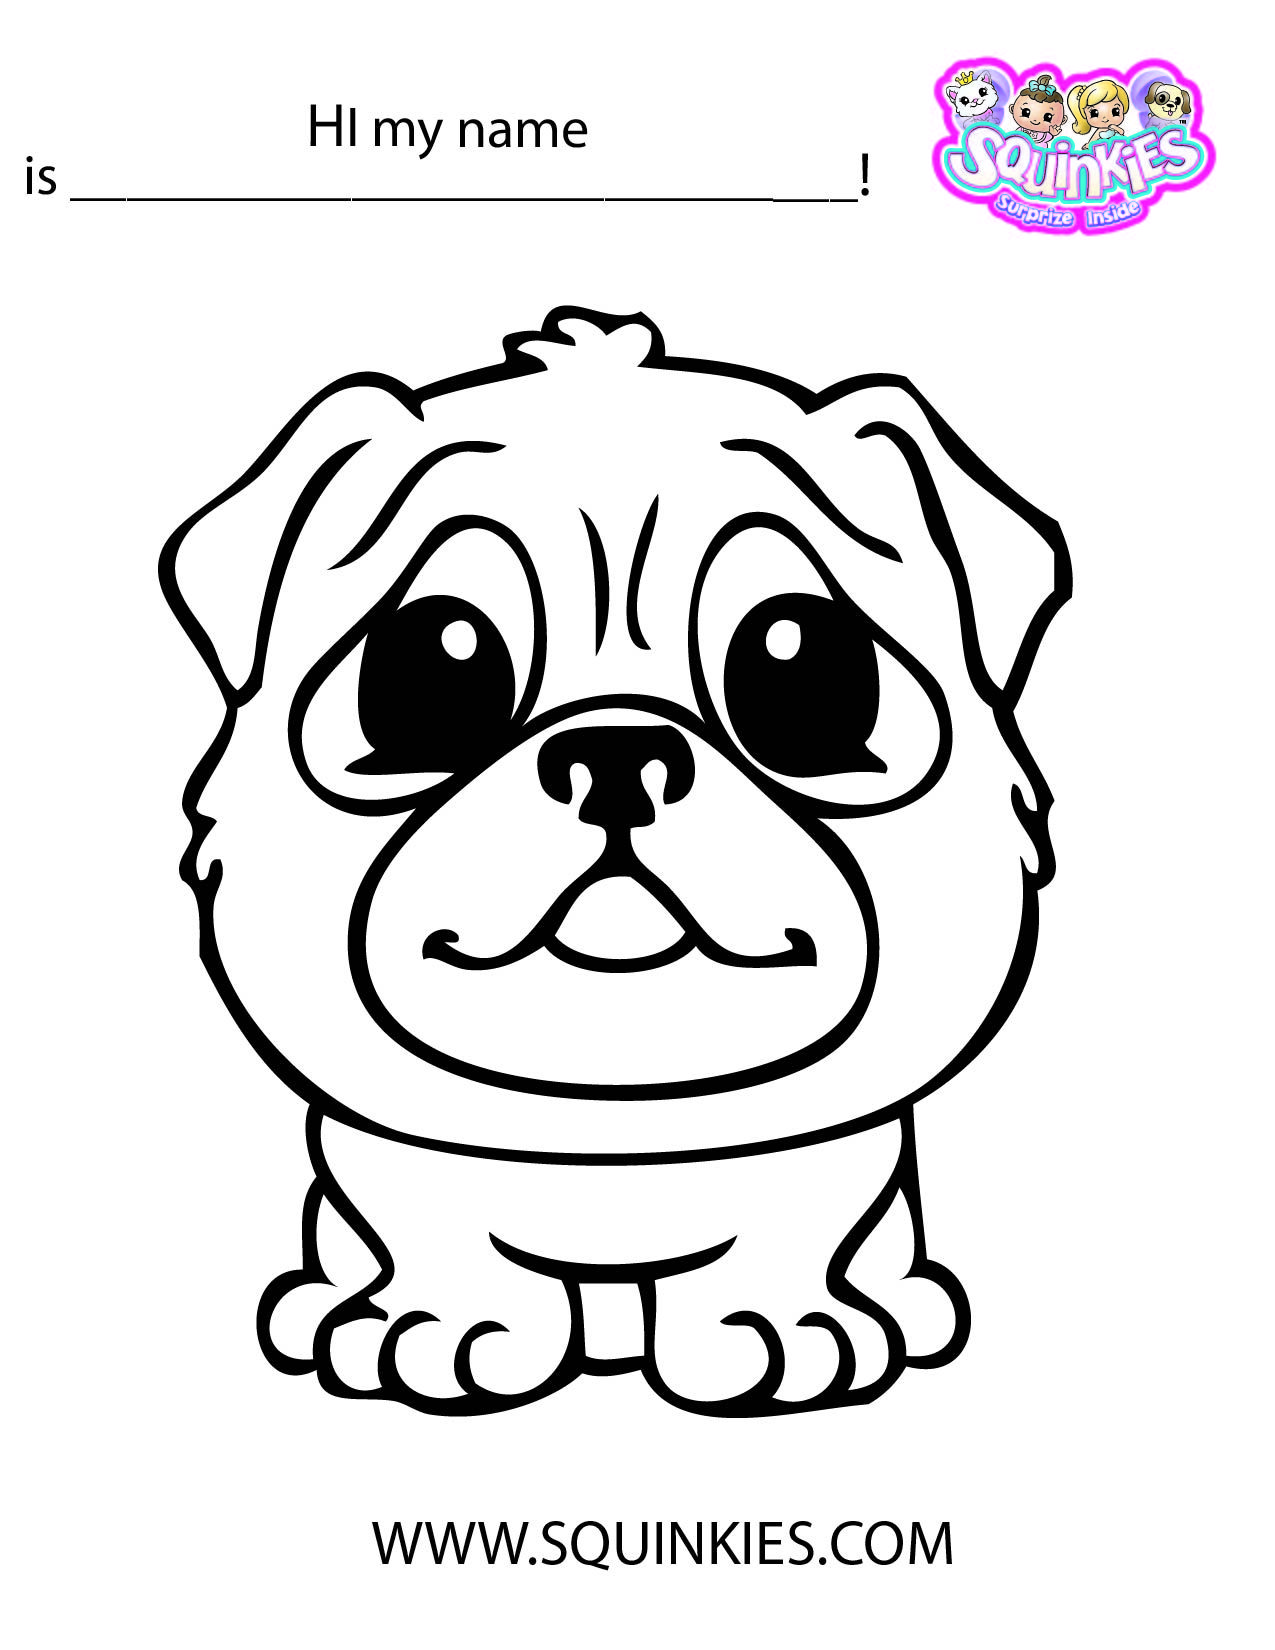 Squinkies Coloring Page With Images Cartoon Coloring Pages